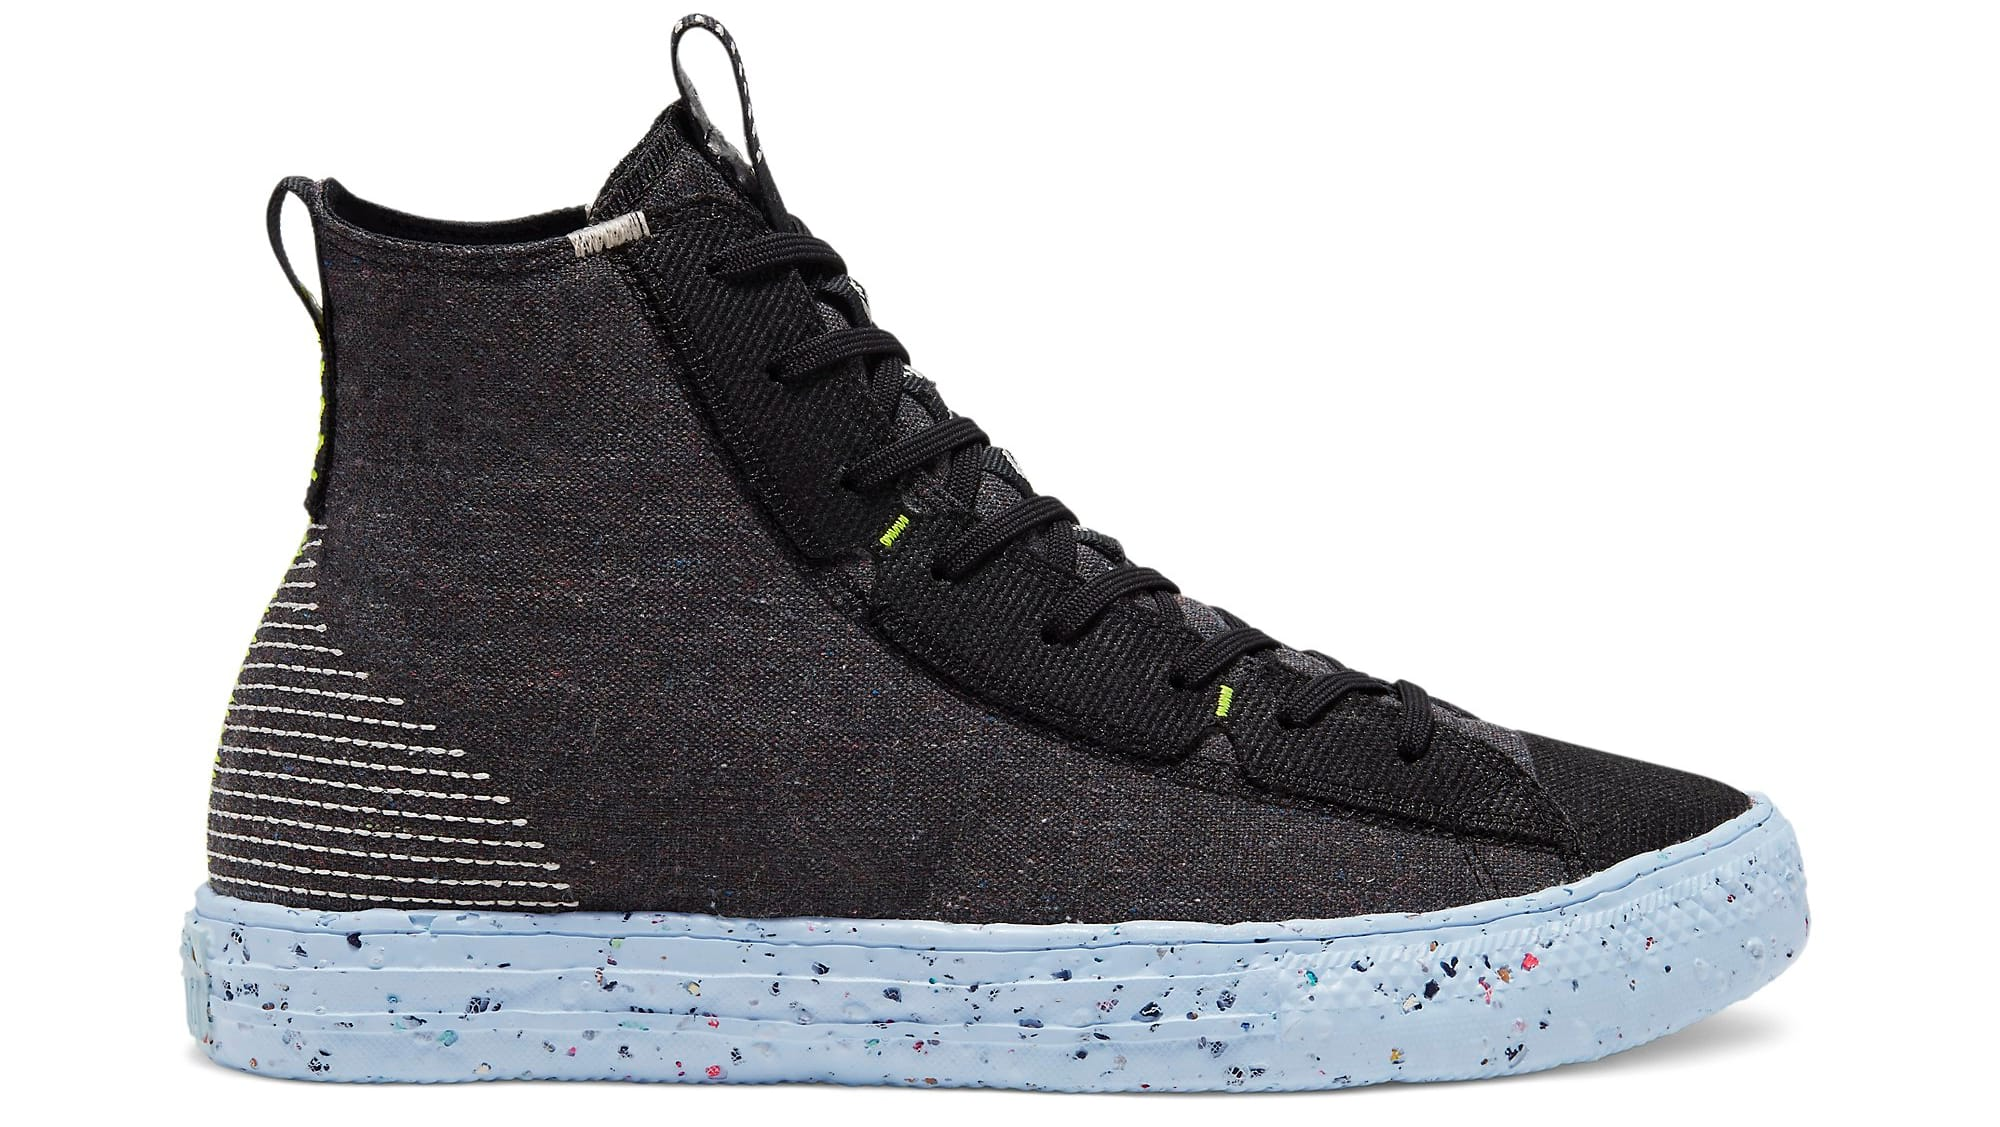 Converse Chuck Taylor All-Star Crater 'Black' 168600C-001 Release Date